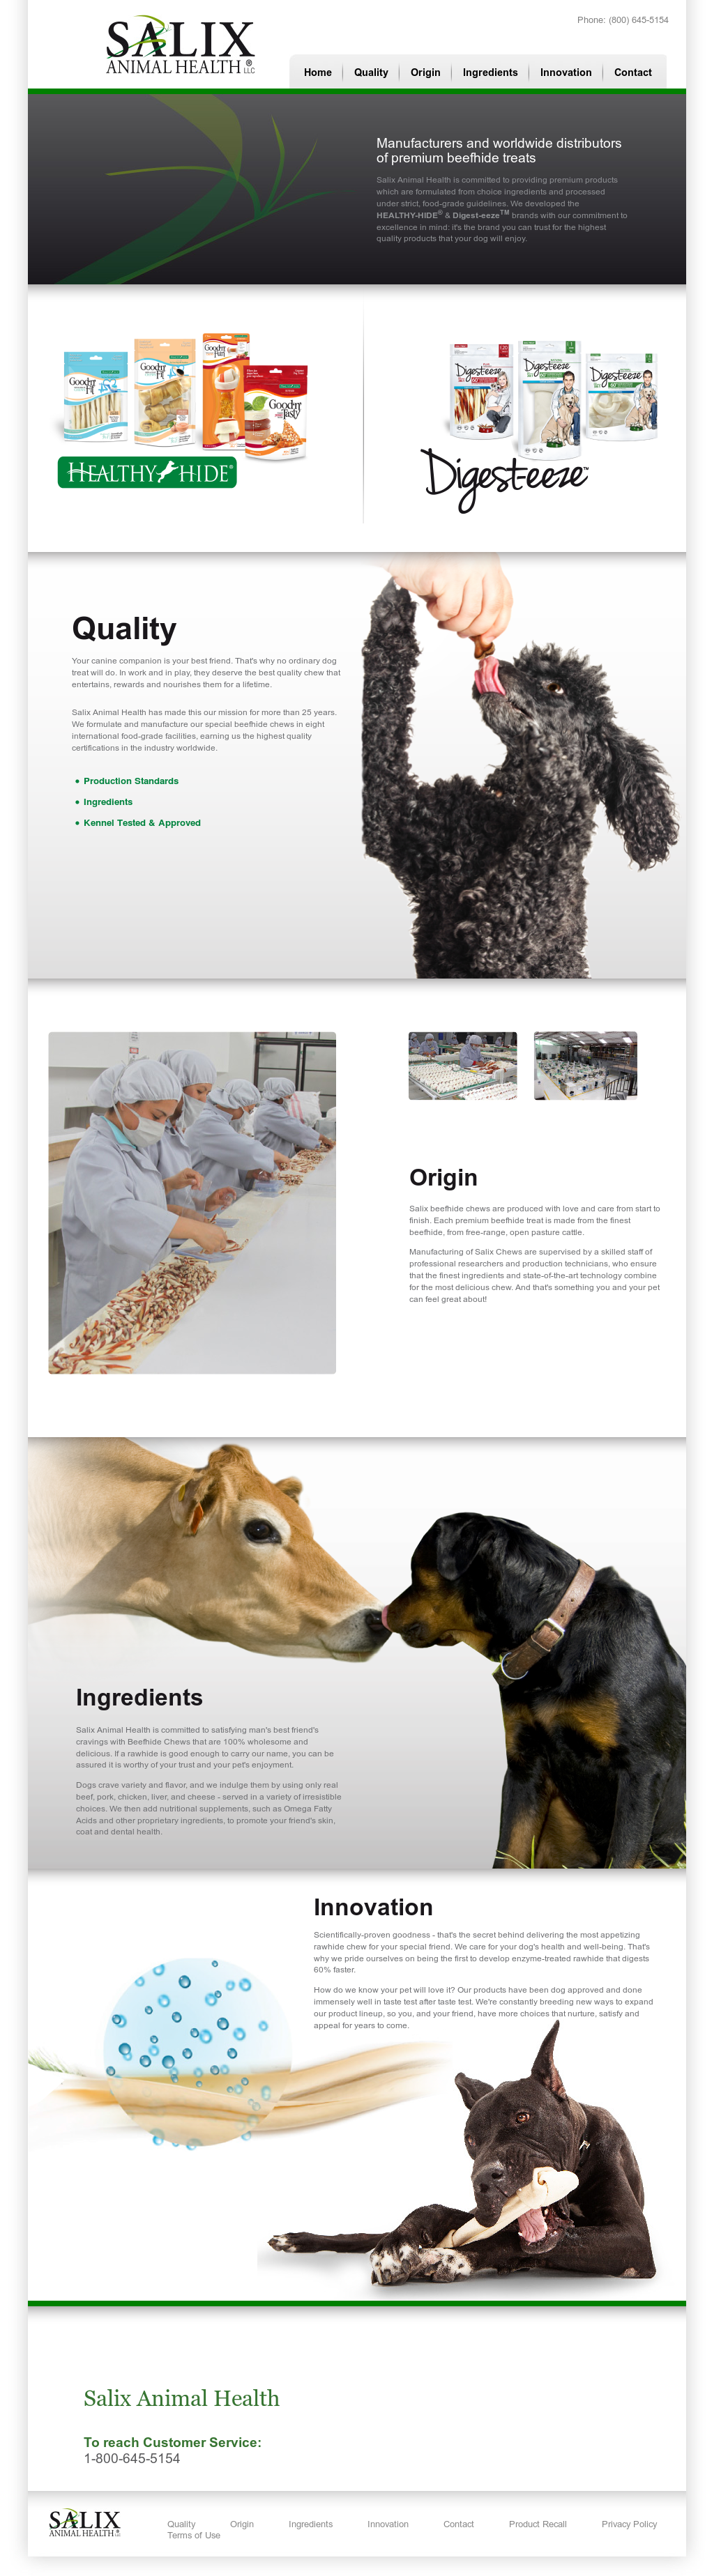 Salix Animal Health Competitors, Revenue and Employees - Owler ...